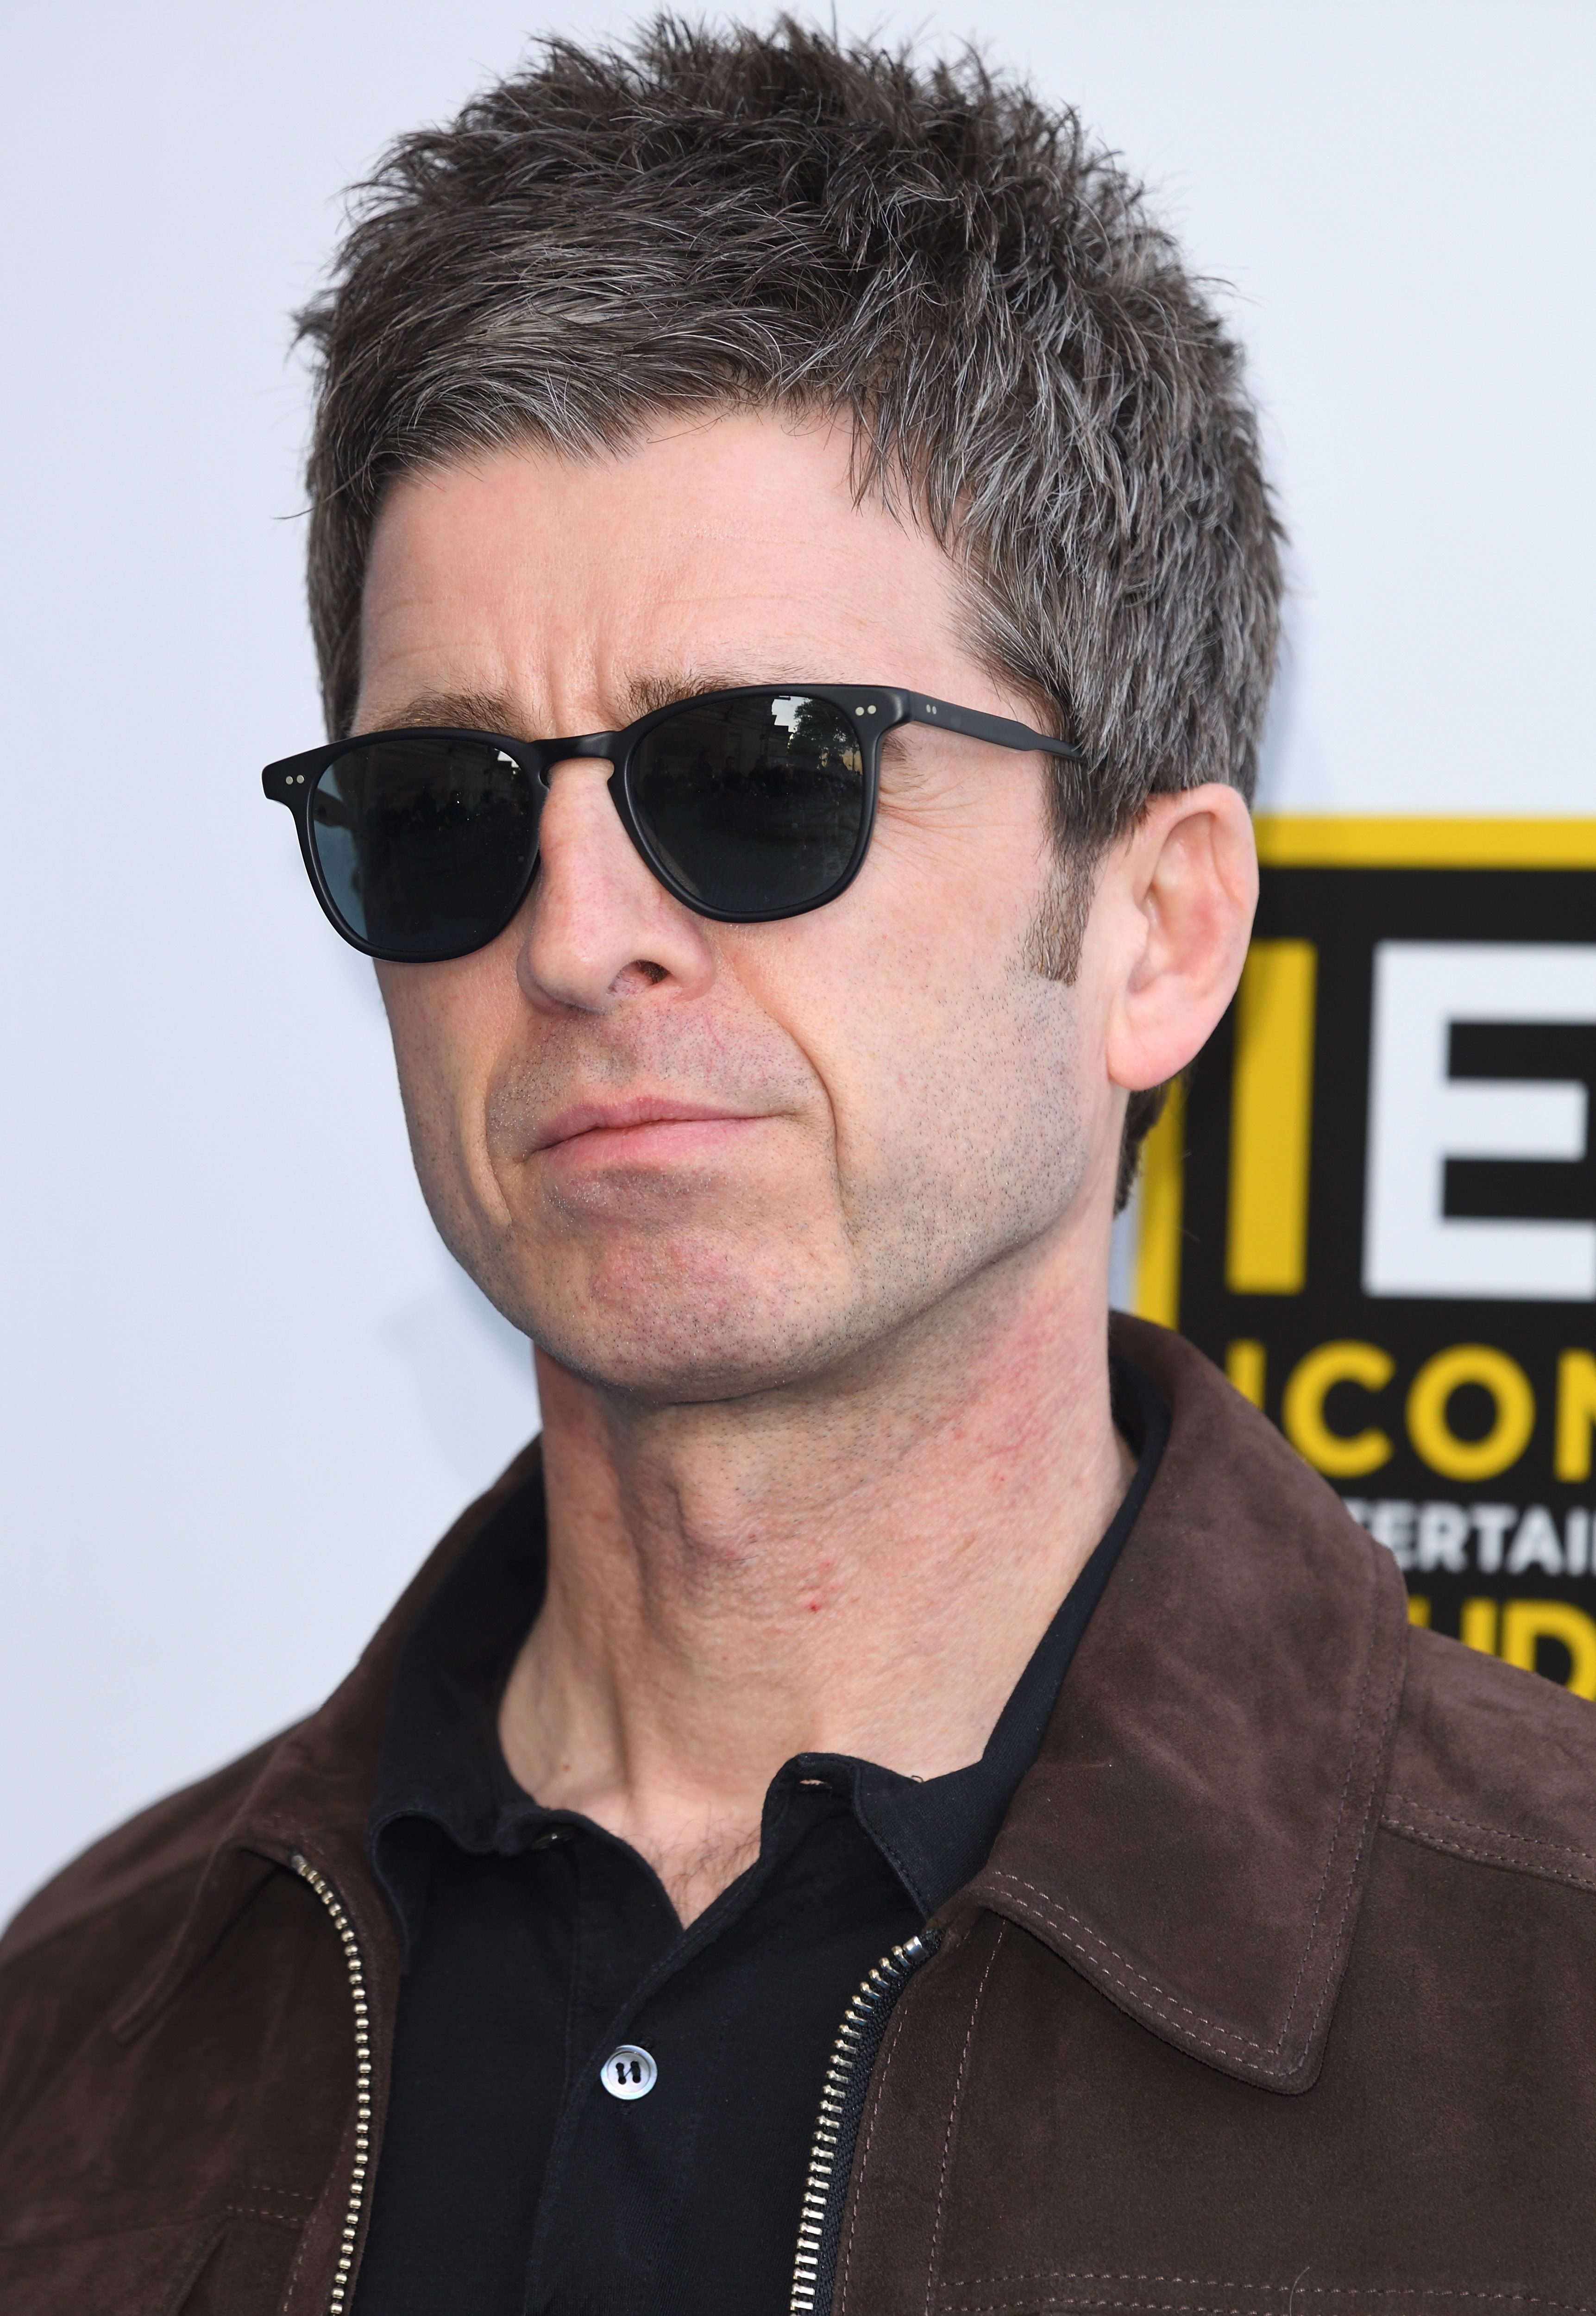 Noel Gallagher 'Wasn't Asked To Perform At One Love Manchester Benefit Concert' (Despite Liam's